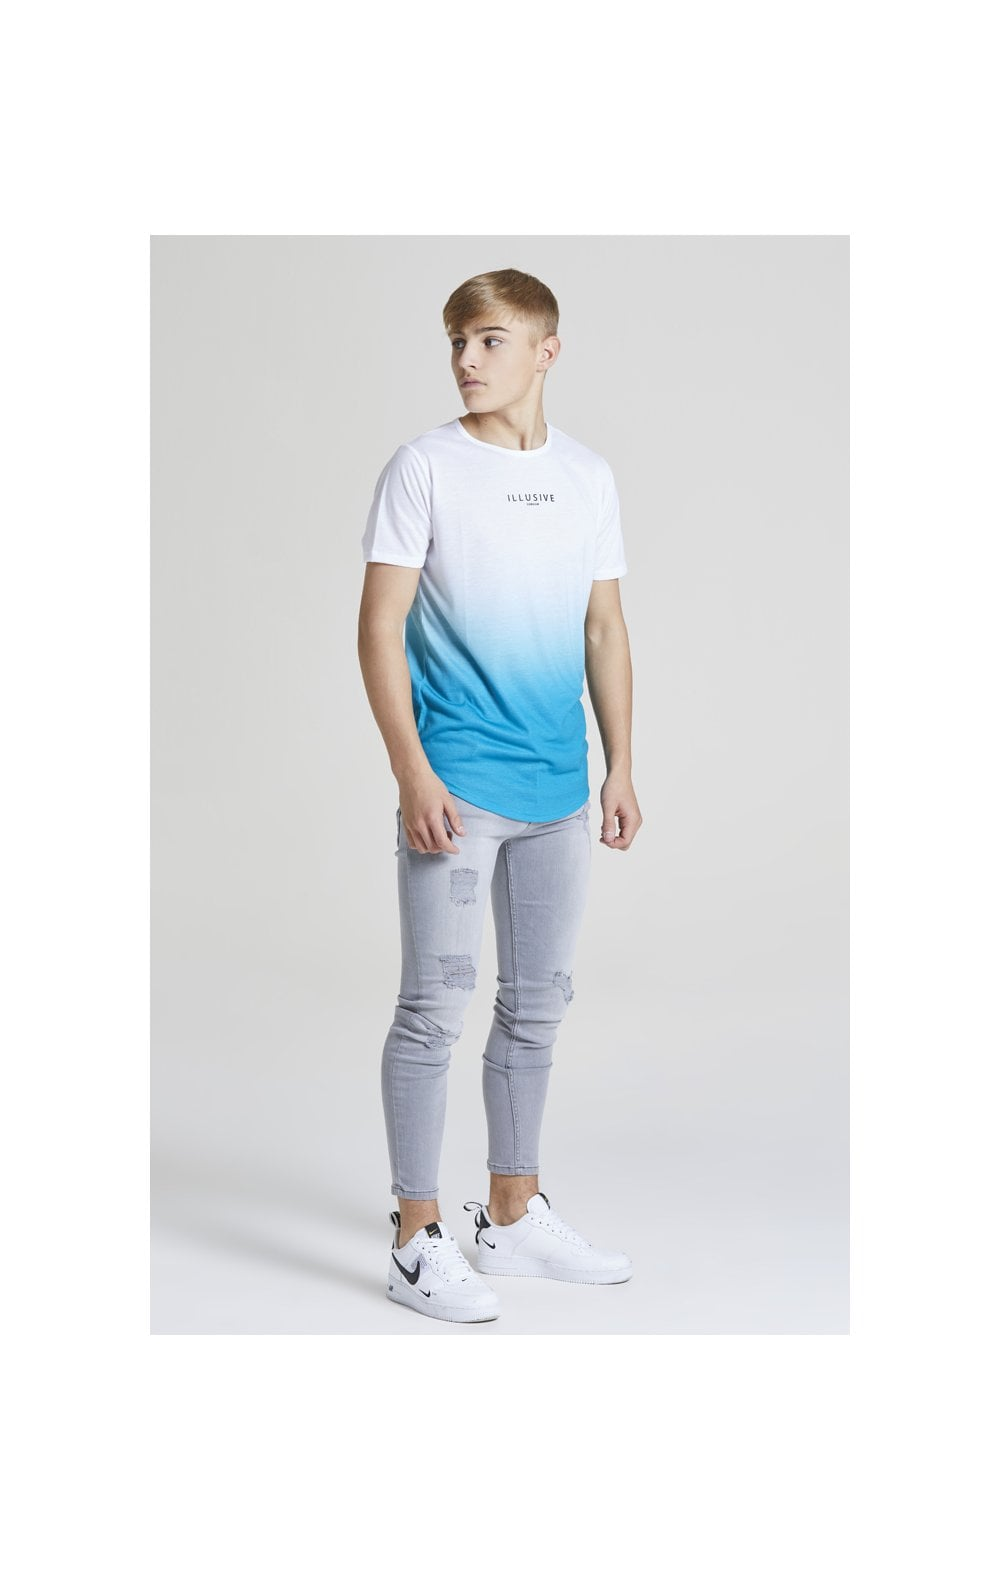 Illusive London Core Fade Tee – White & Teal Green (4)